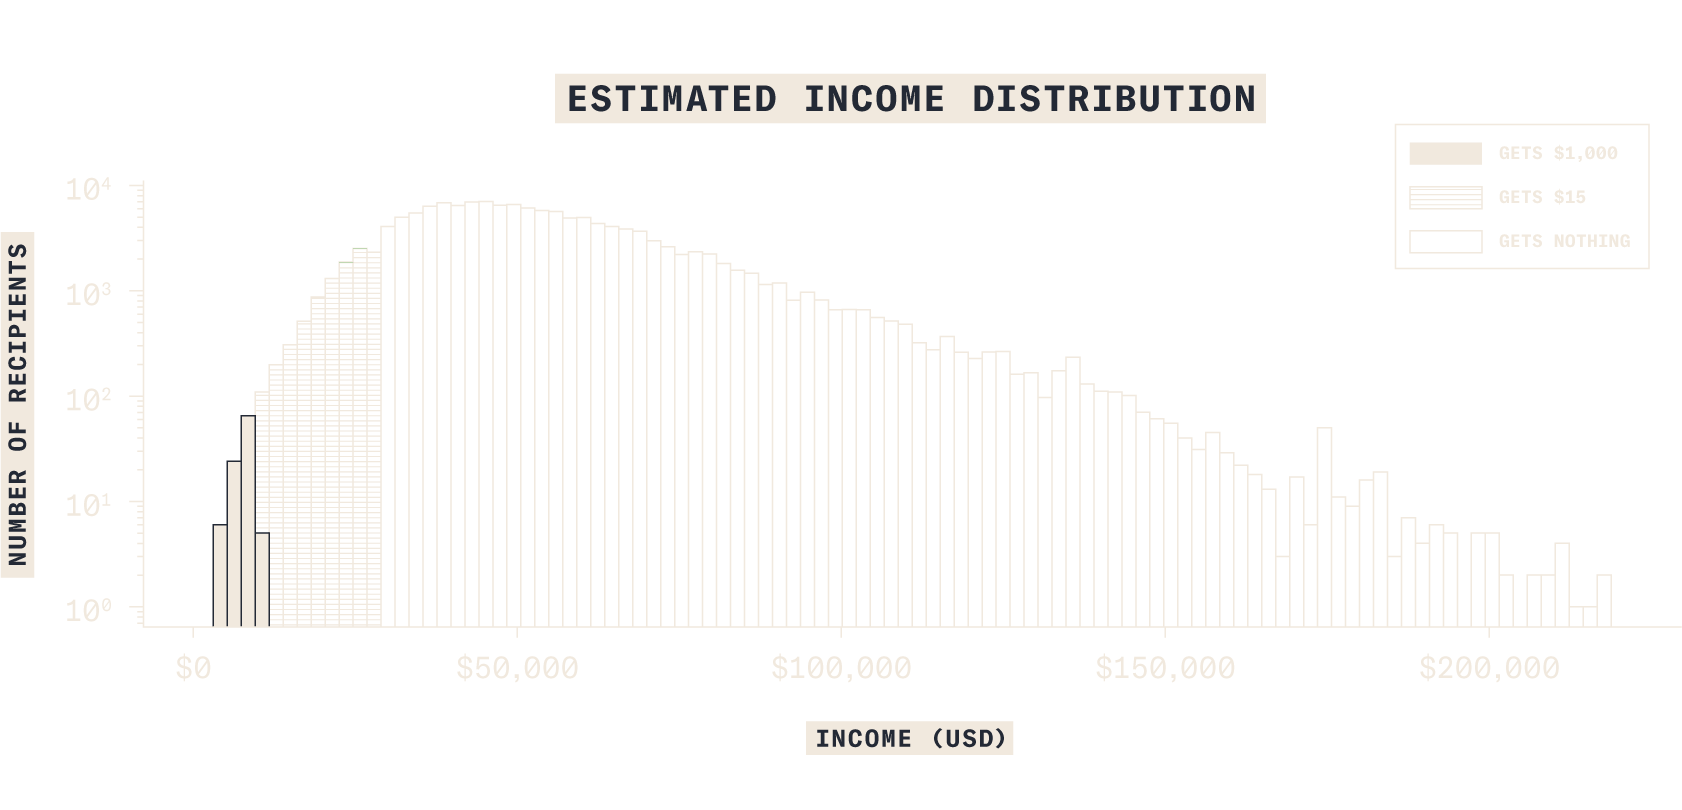 Estimated Income Distribution